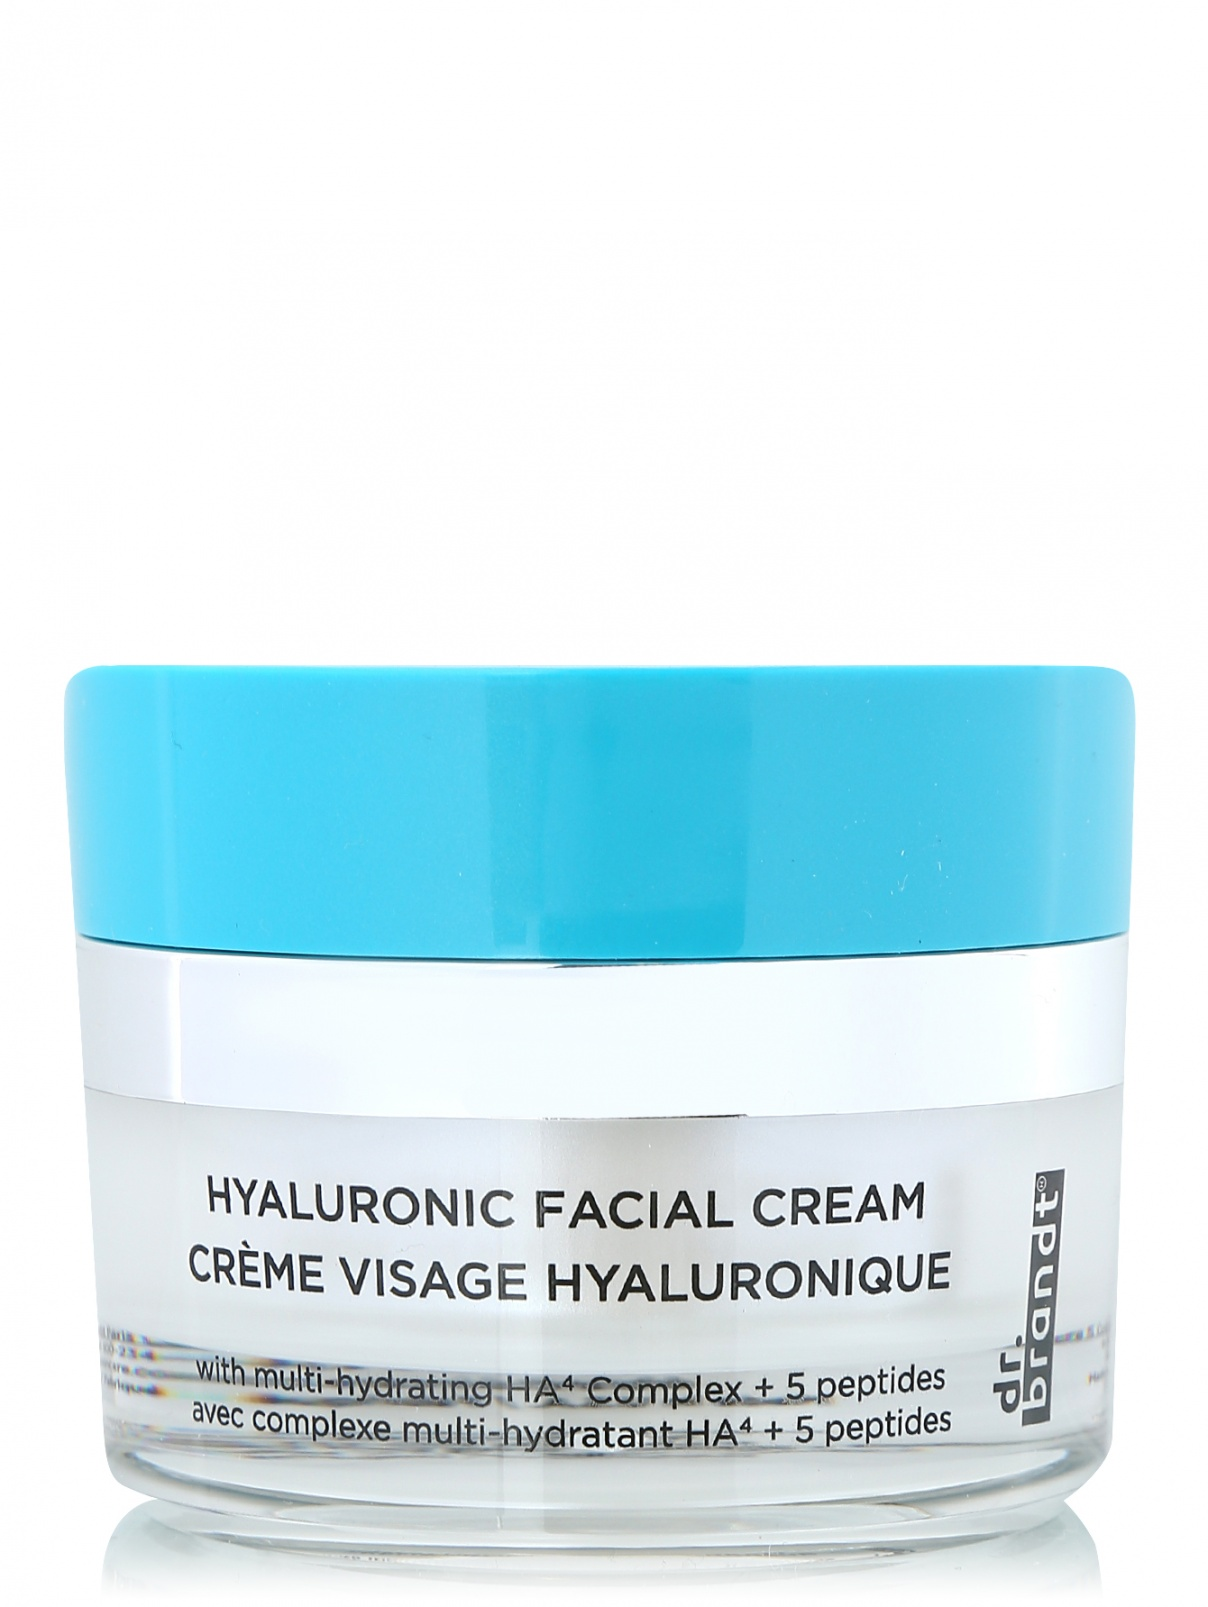 Крем 50 мл House Calls Hyaluronic Face Care Dr.Brandt  –  Общий вид